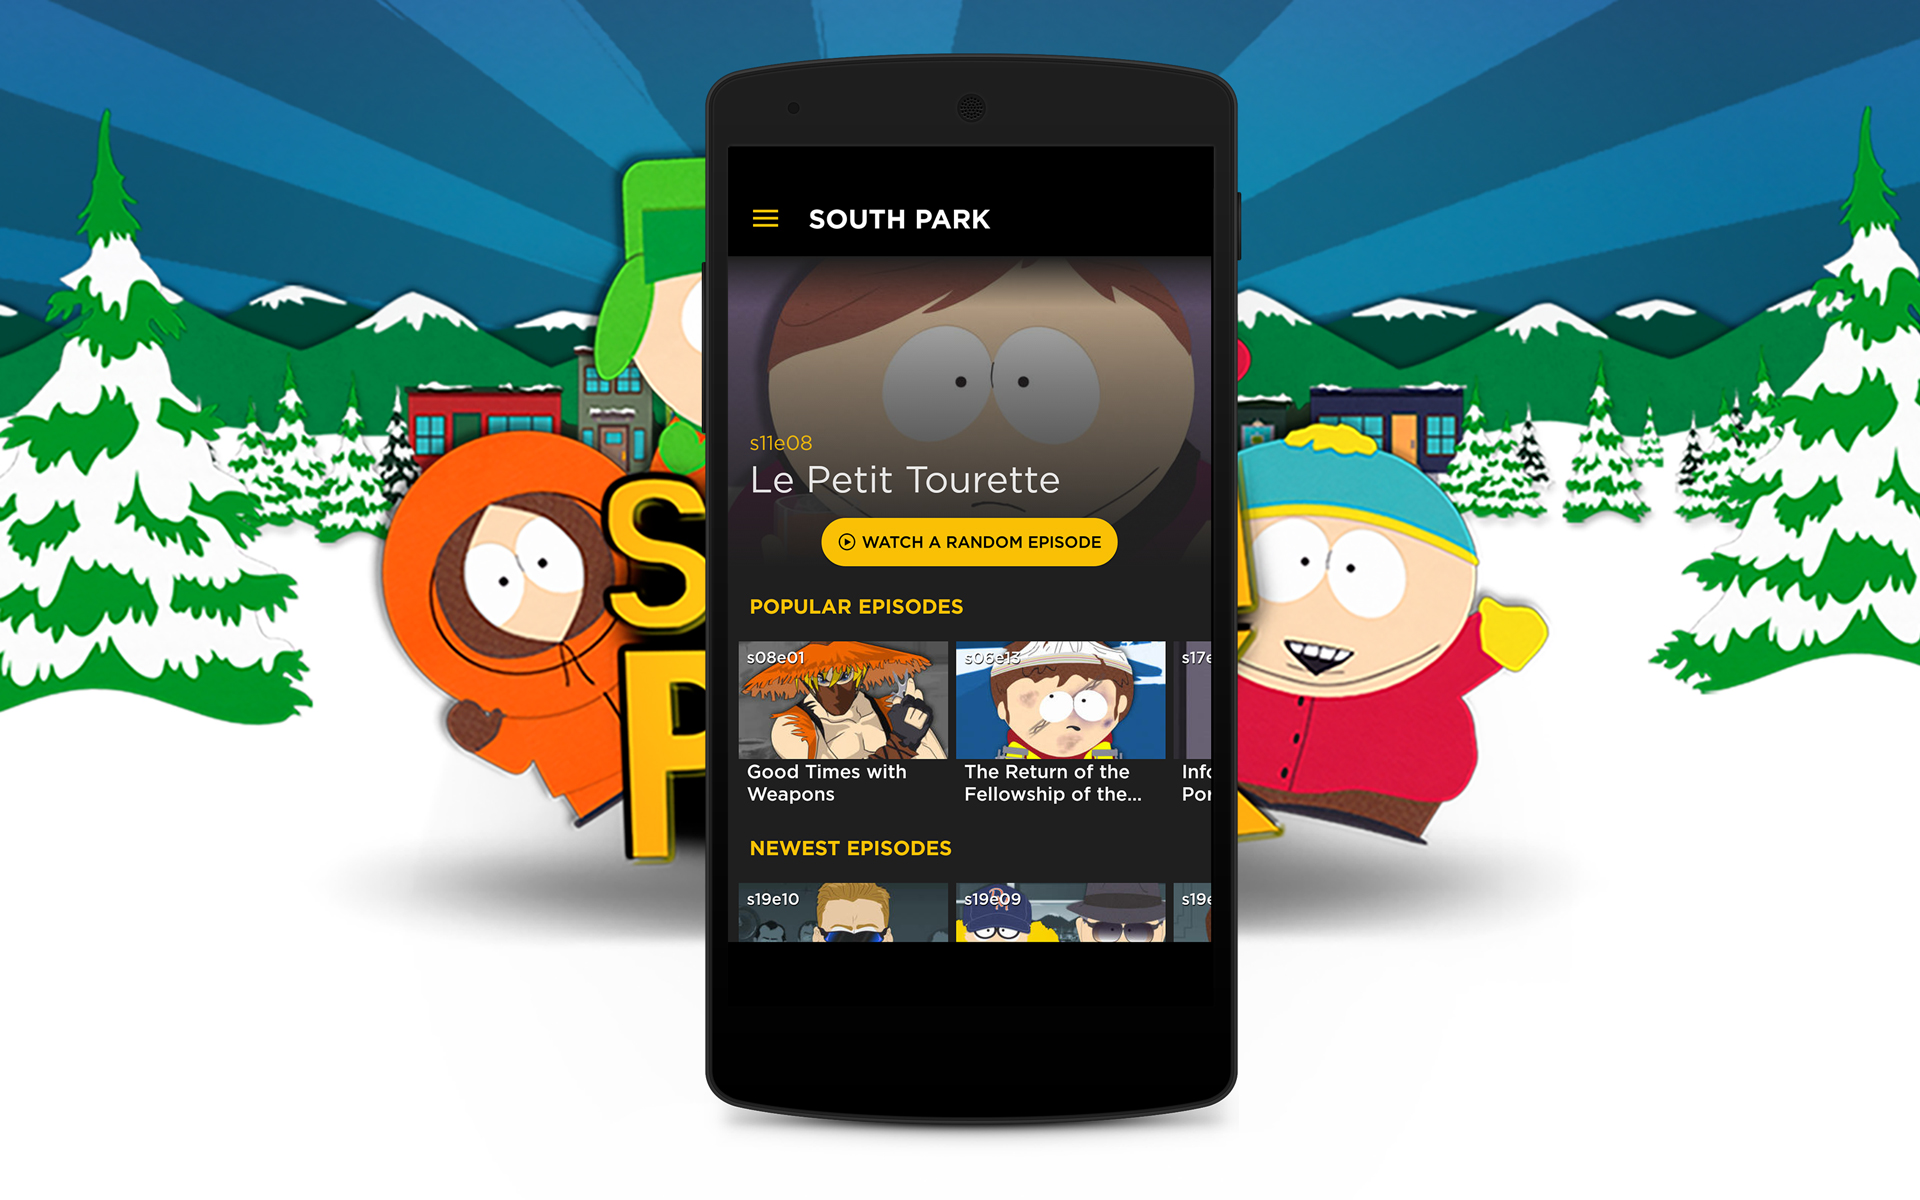 South Park TV Screenshot